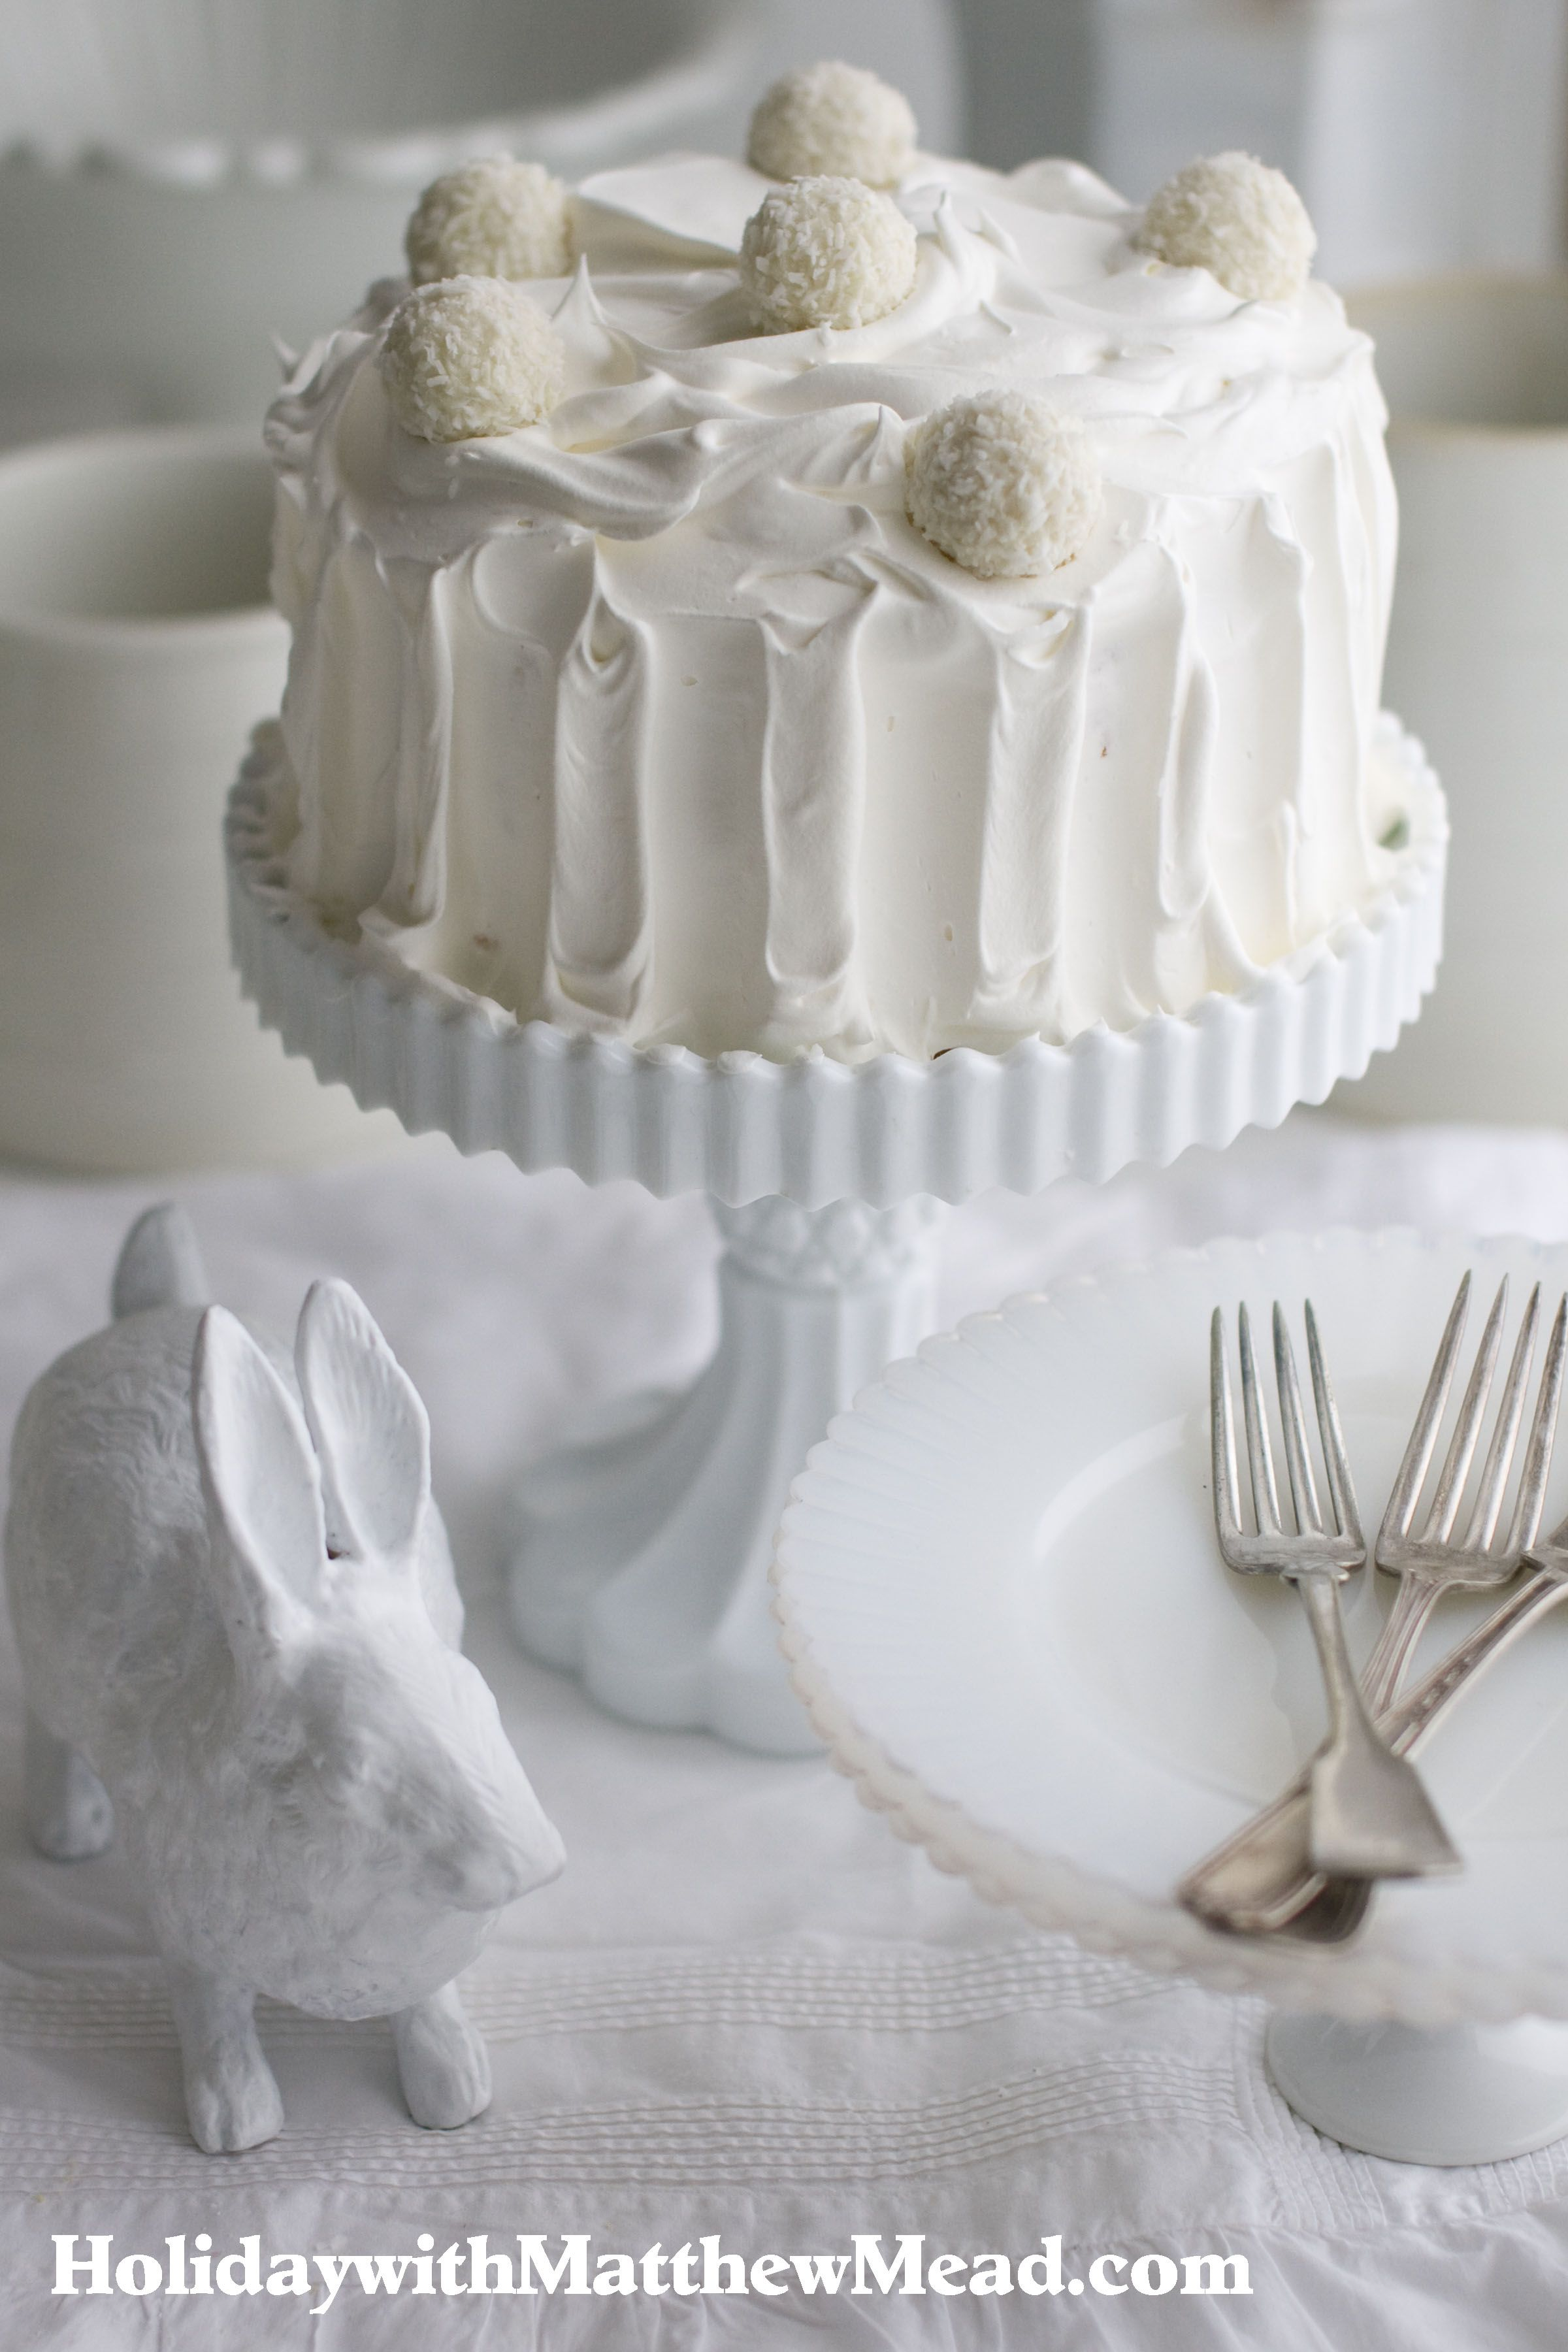 Holiday With Matthew Mead Easter Desserts Recipes Easter Dessert Angel Food